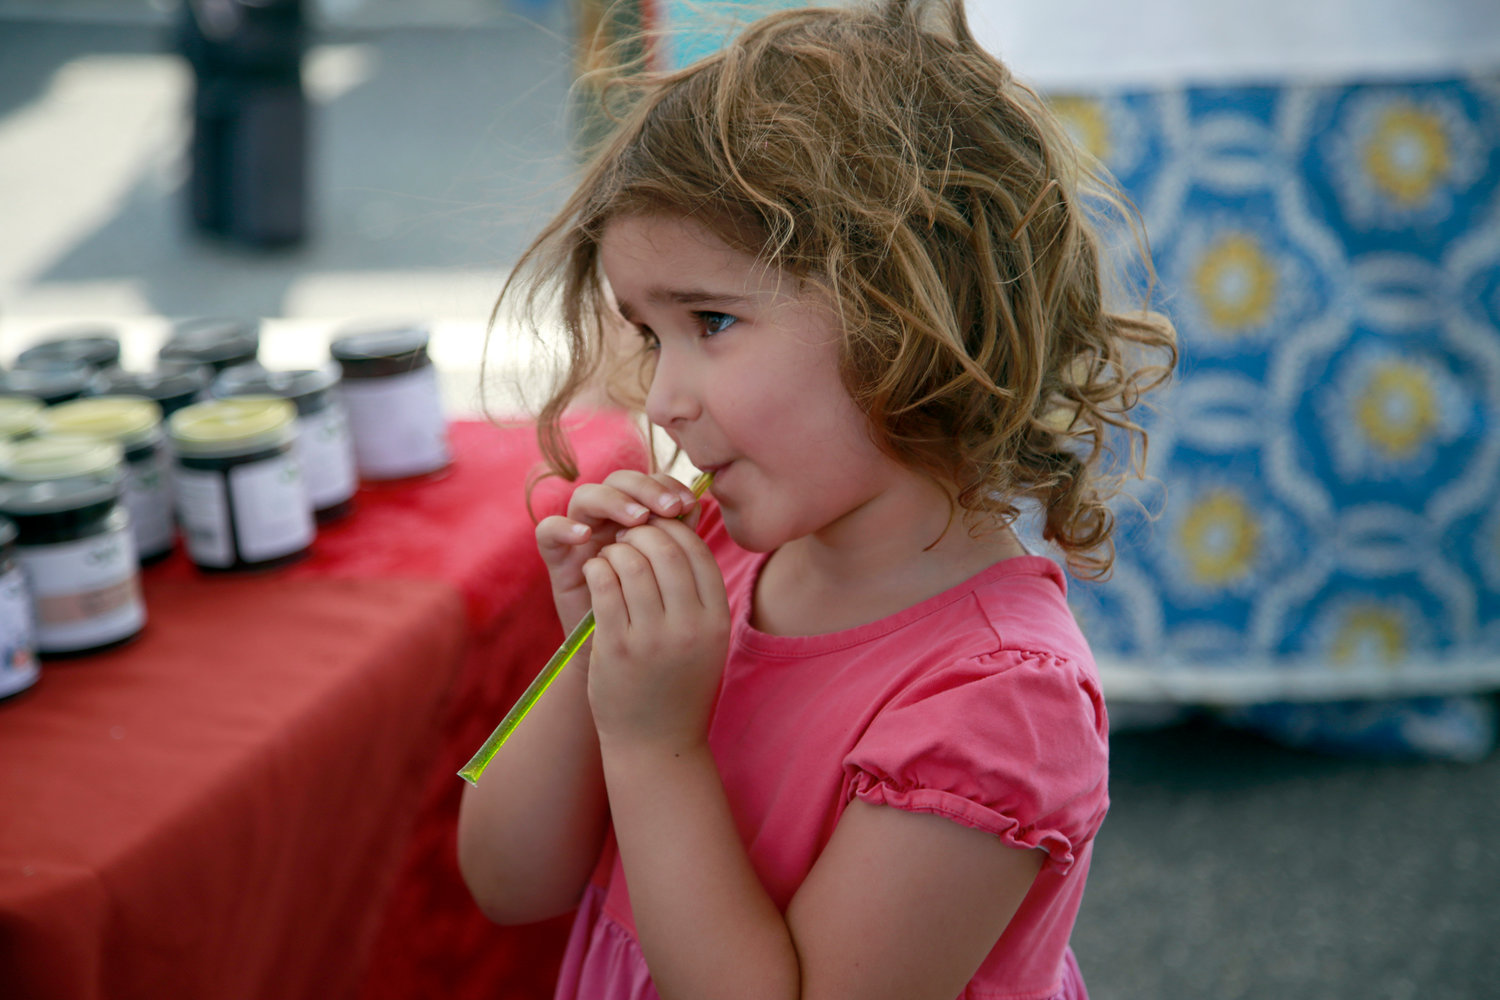 Three-year-old Linden Shamey sipped on a honey stick at last year's farmer's market in Valley Stream. The market is returning once again on July 9.